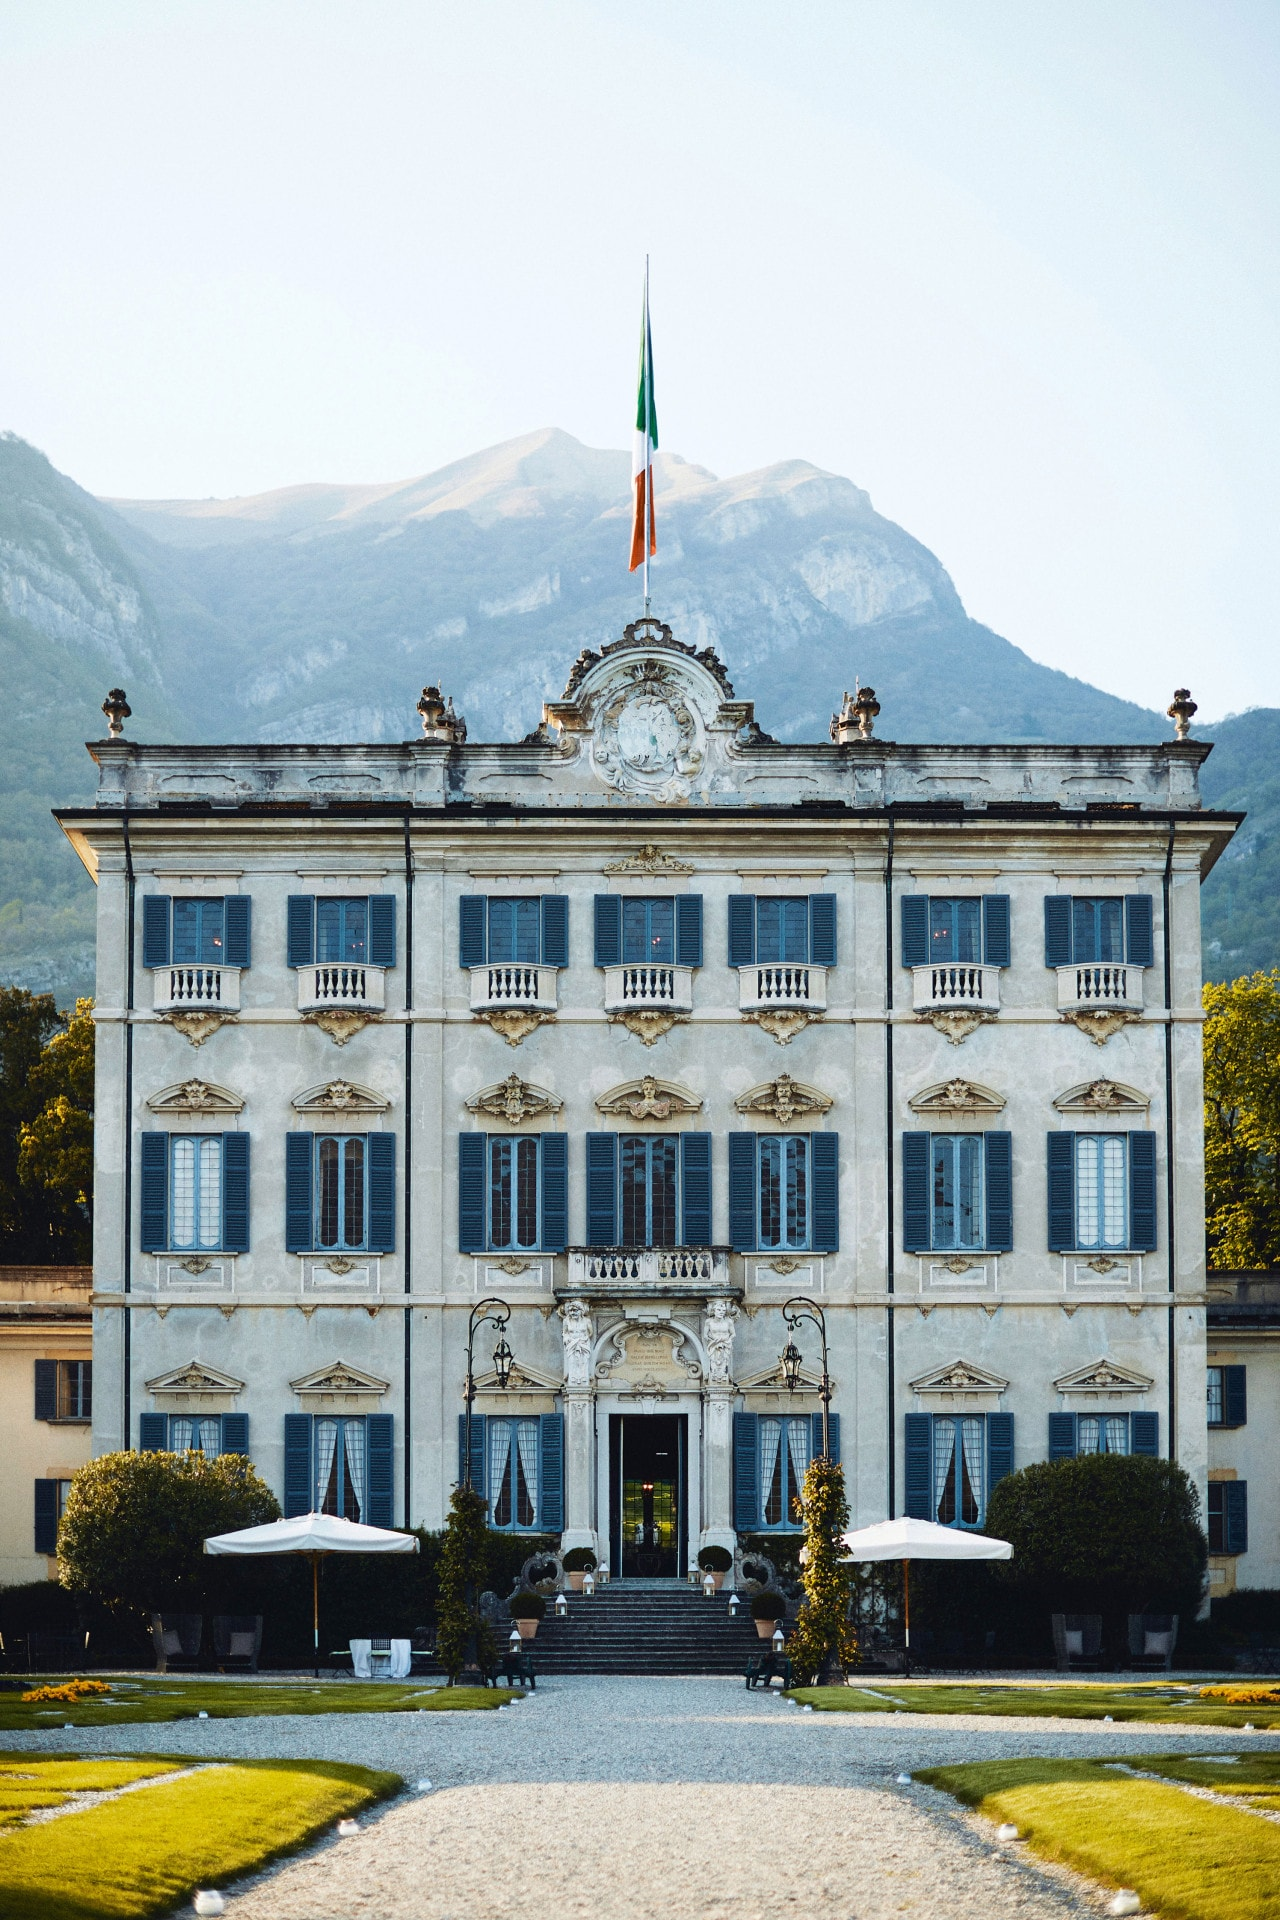 Inside a grand 16th century hotel villa on Lake Como